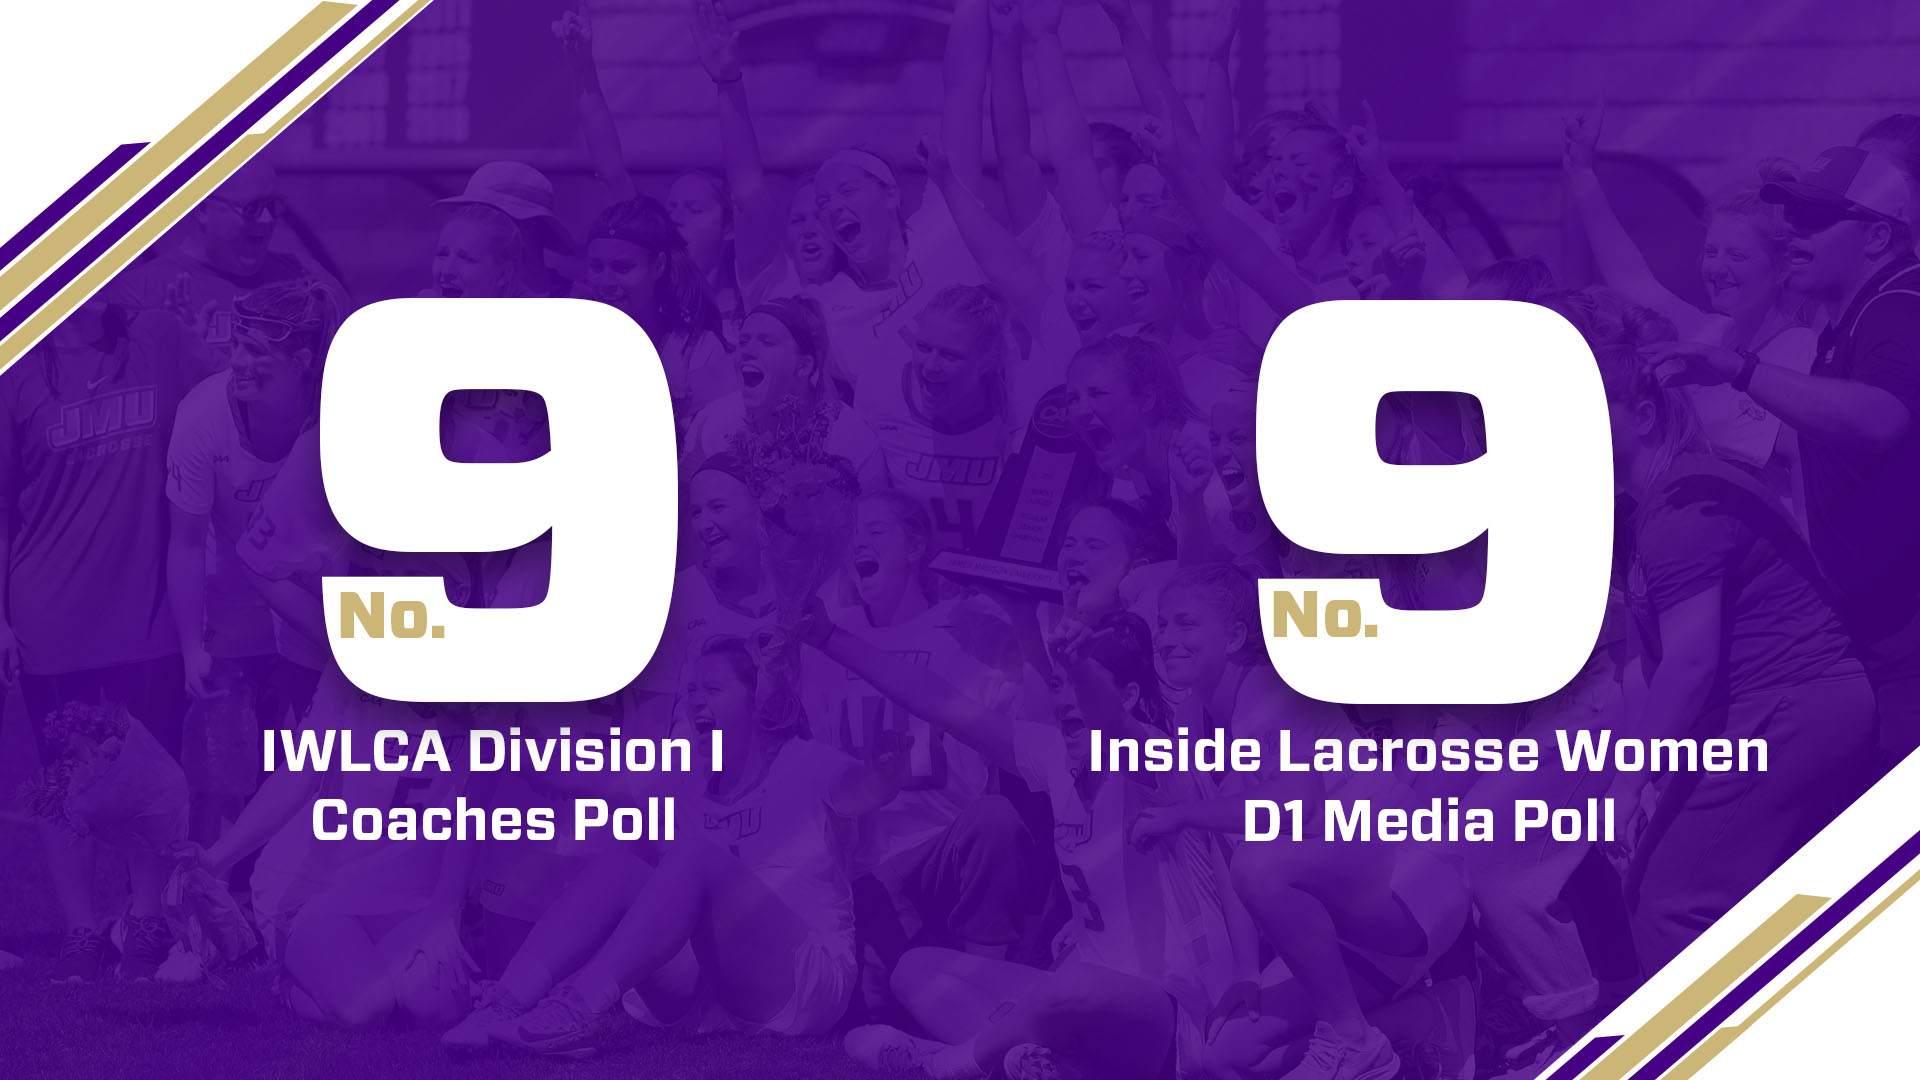 Lacrosse: Dukes Hold Strong at No. 9 in Both Major Lacrosse Polls